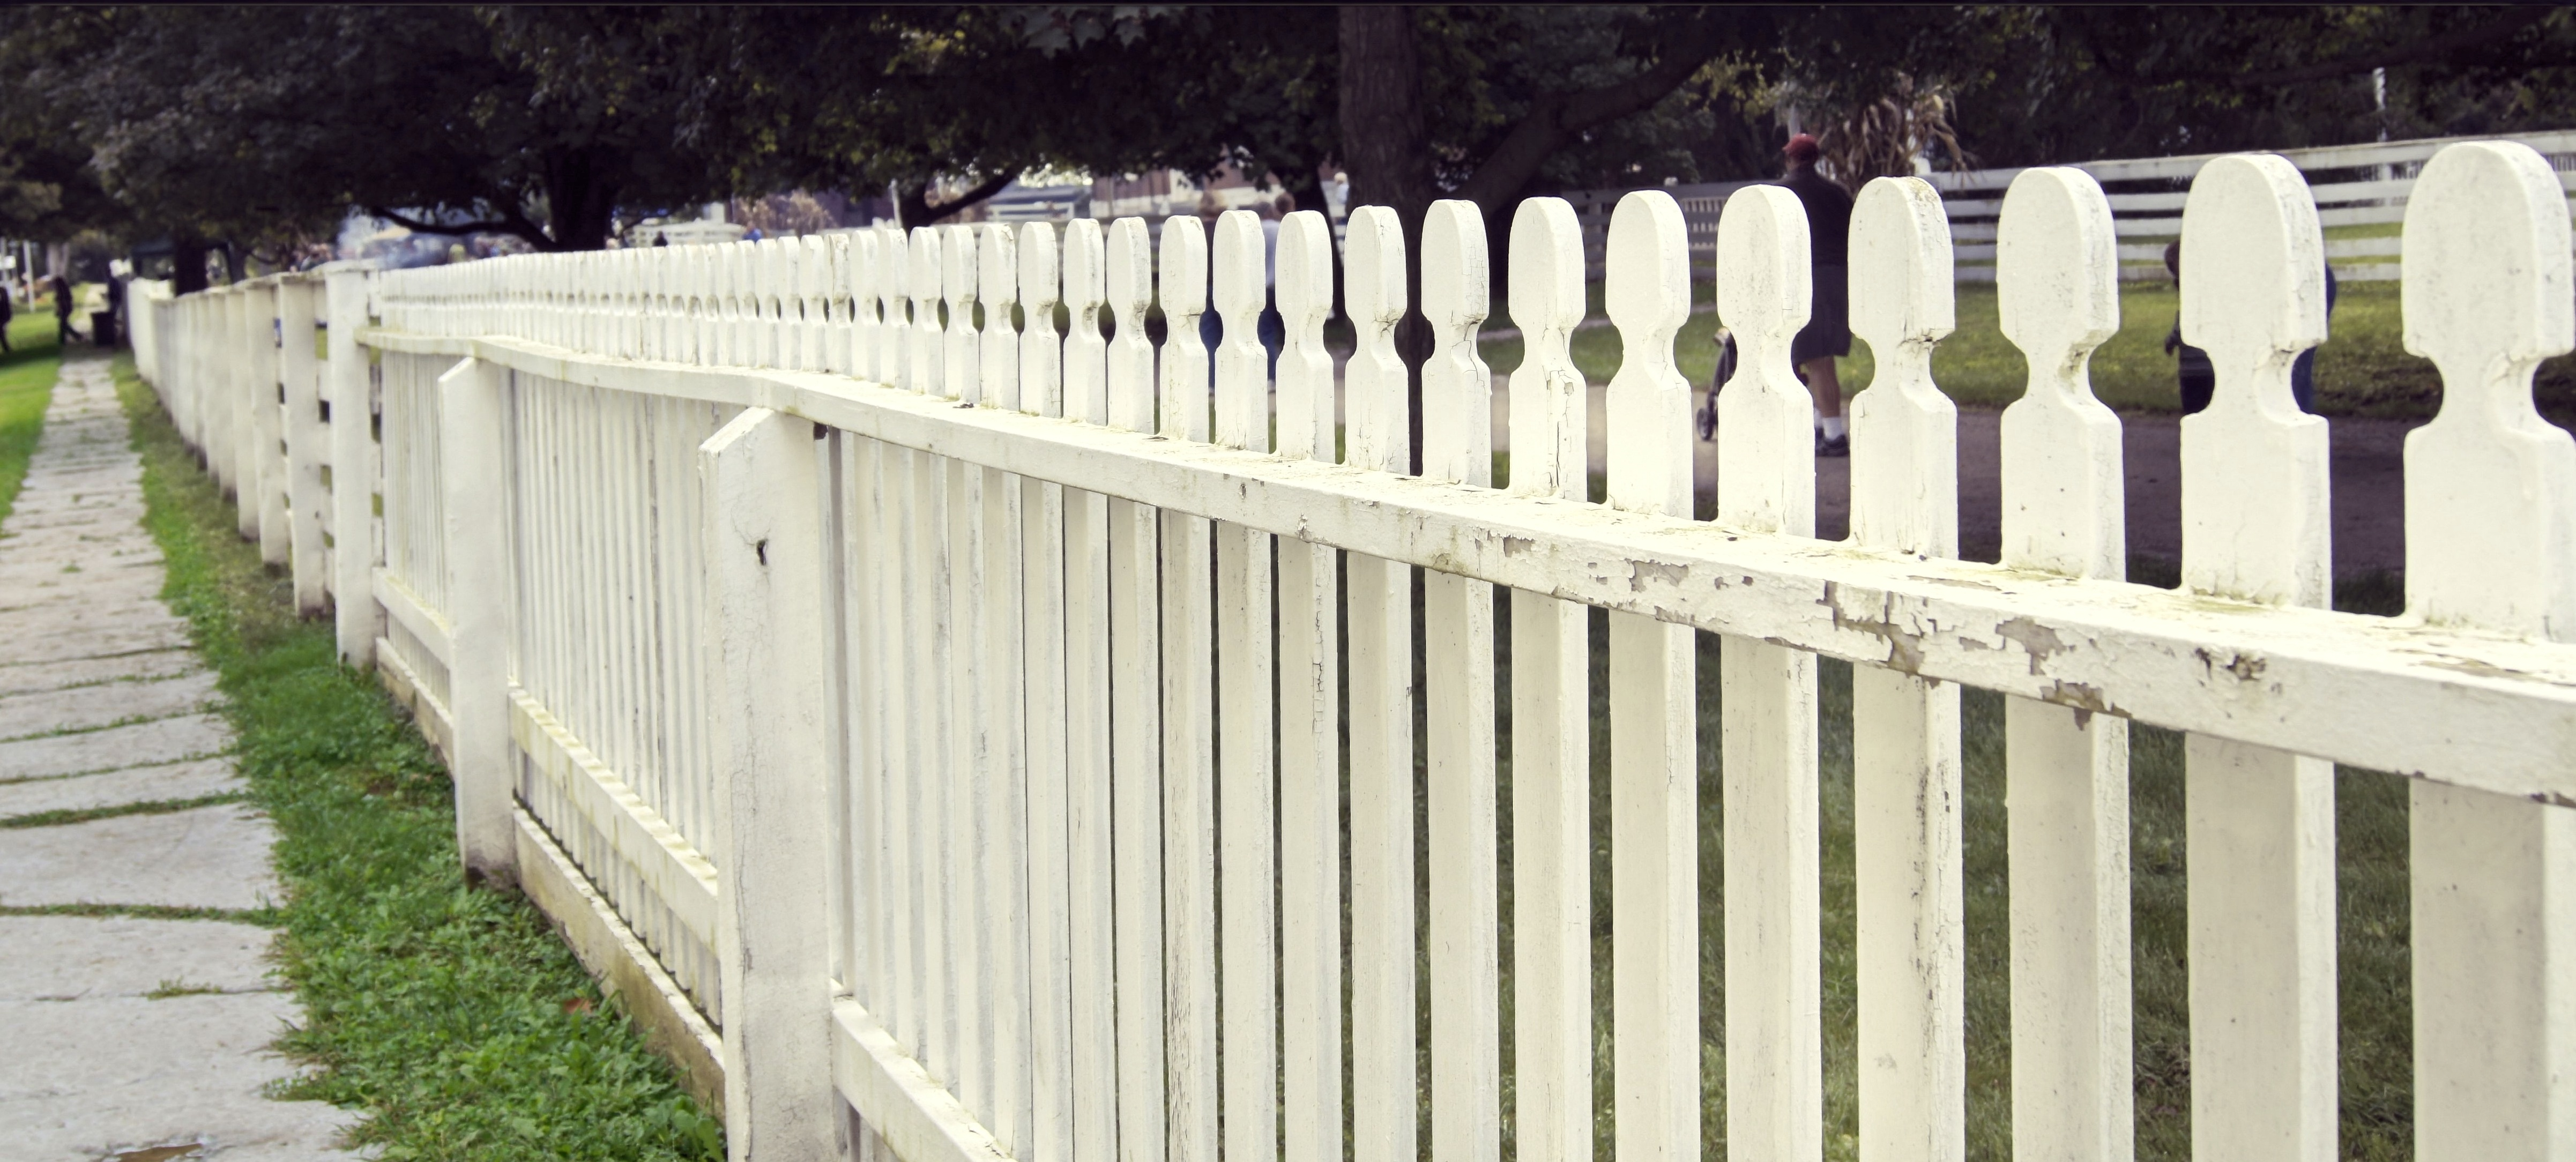 fence-white-wood-wooden-design-644373